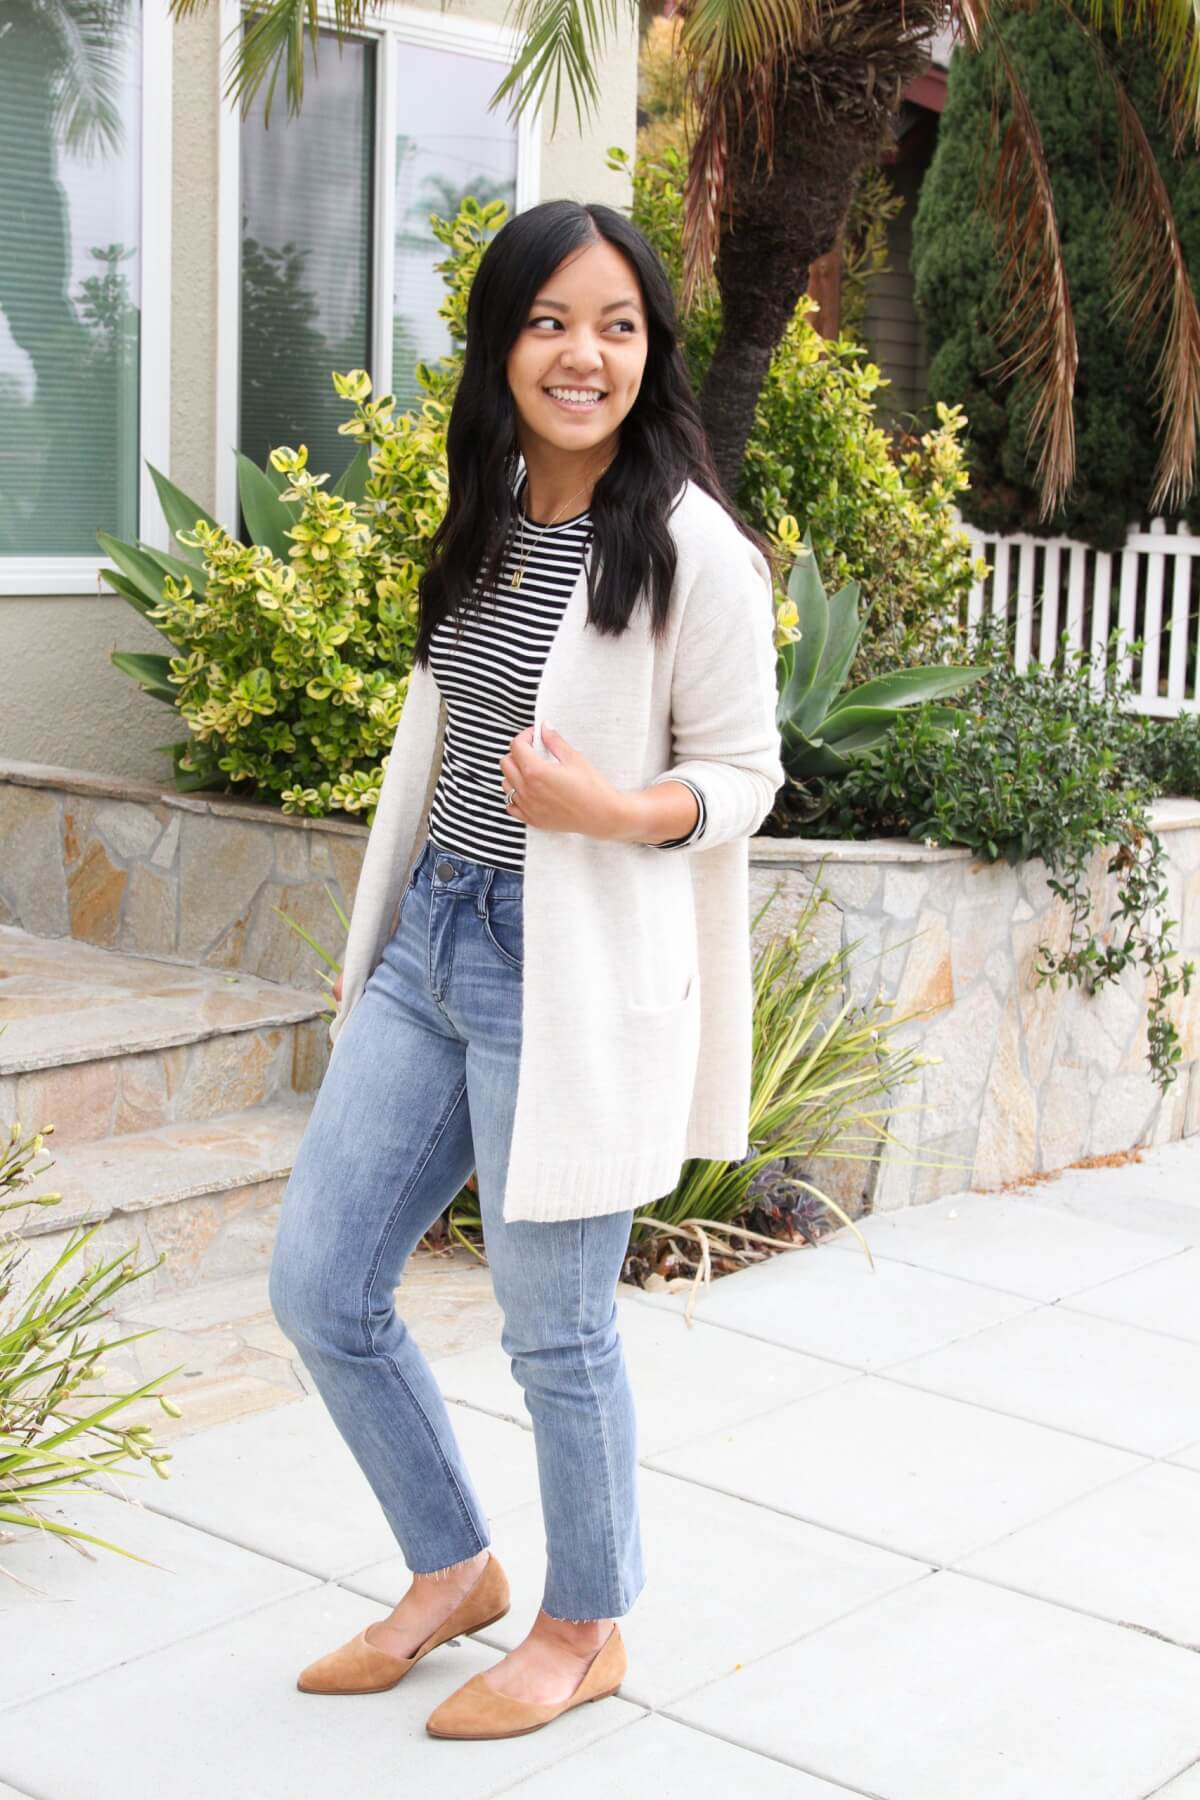 Comfy Casual Work Outfit: Halogen black and white striped long sleeve top + straight leg jeans + cream cardigan + tan suede flats + gold pendant necklace